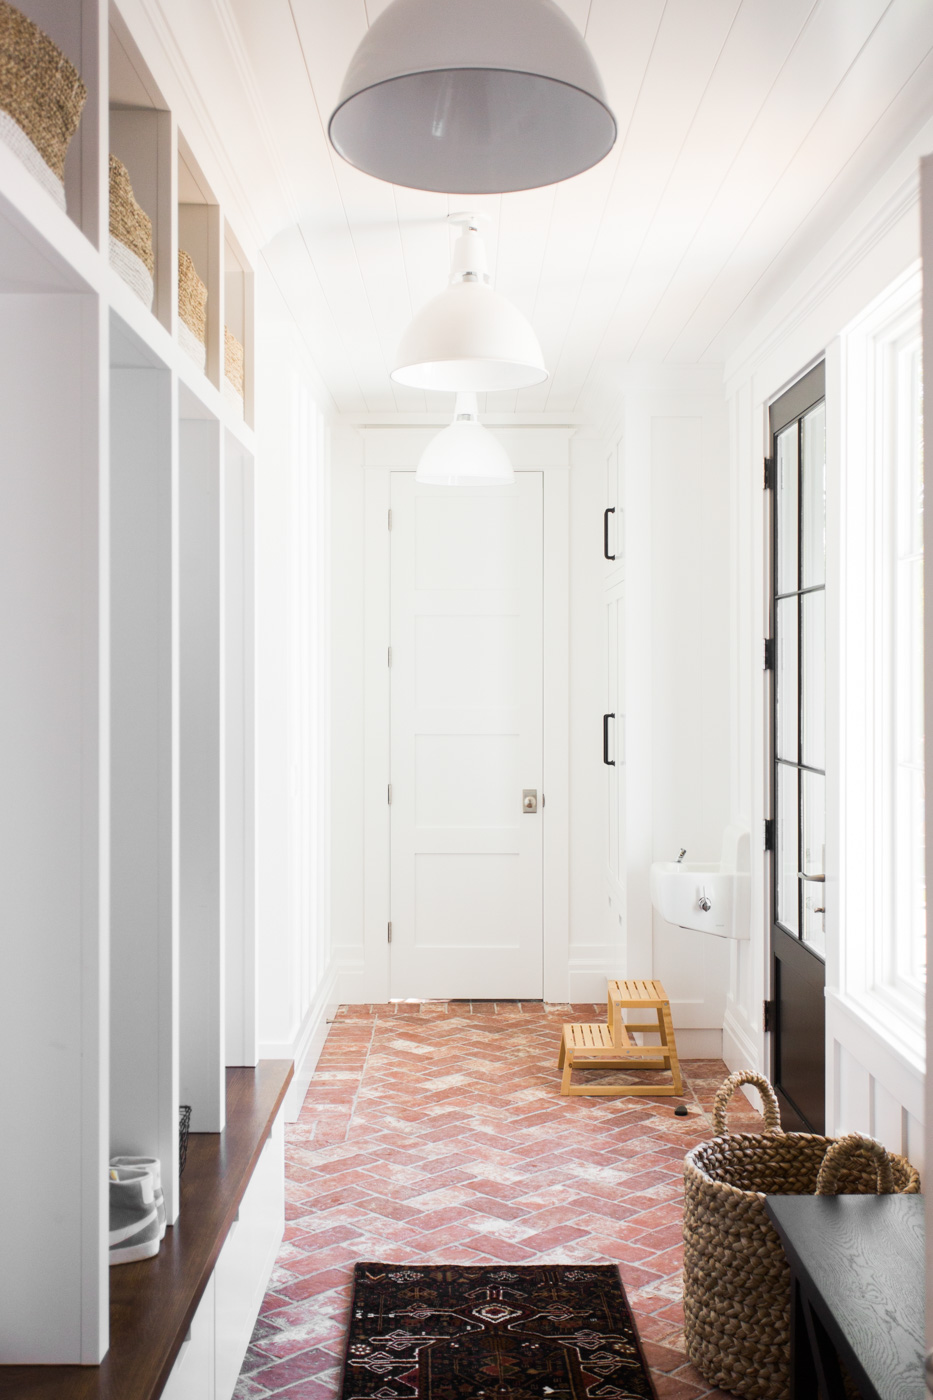 Brick herringbone and board-and-batten walls in the mudroom || Studio McGee